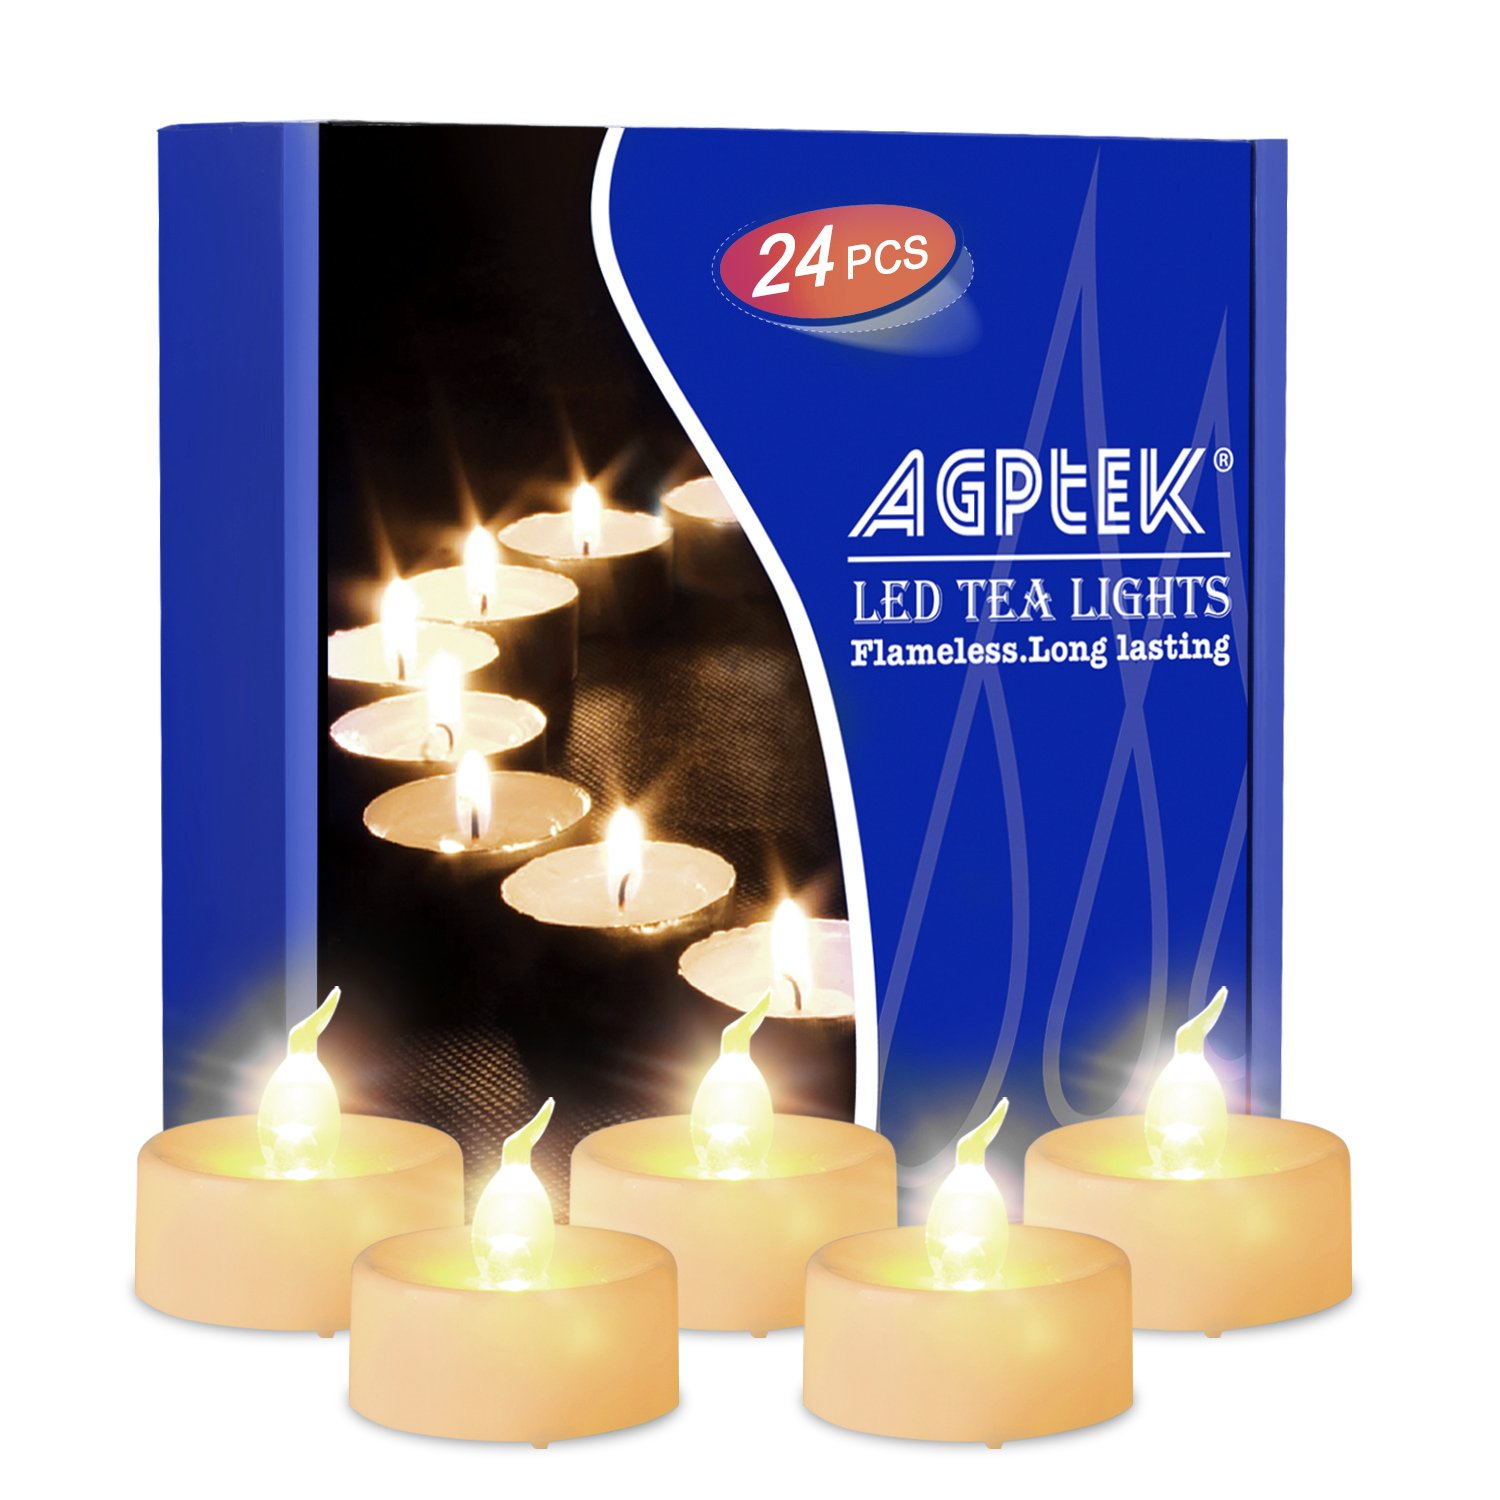 AGPtEK Timer Flickering LED Tealights Candles Battery-Operated Flameless Tealights for Wedding Holiday Party Home Decoration 24pcs(Warm White)